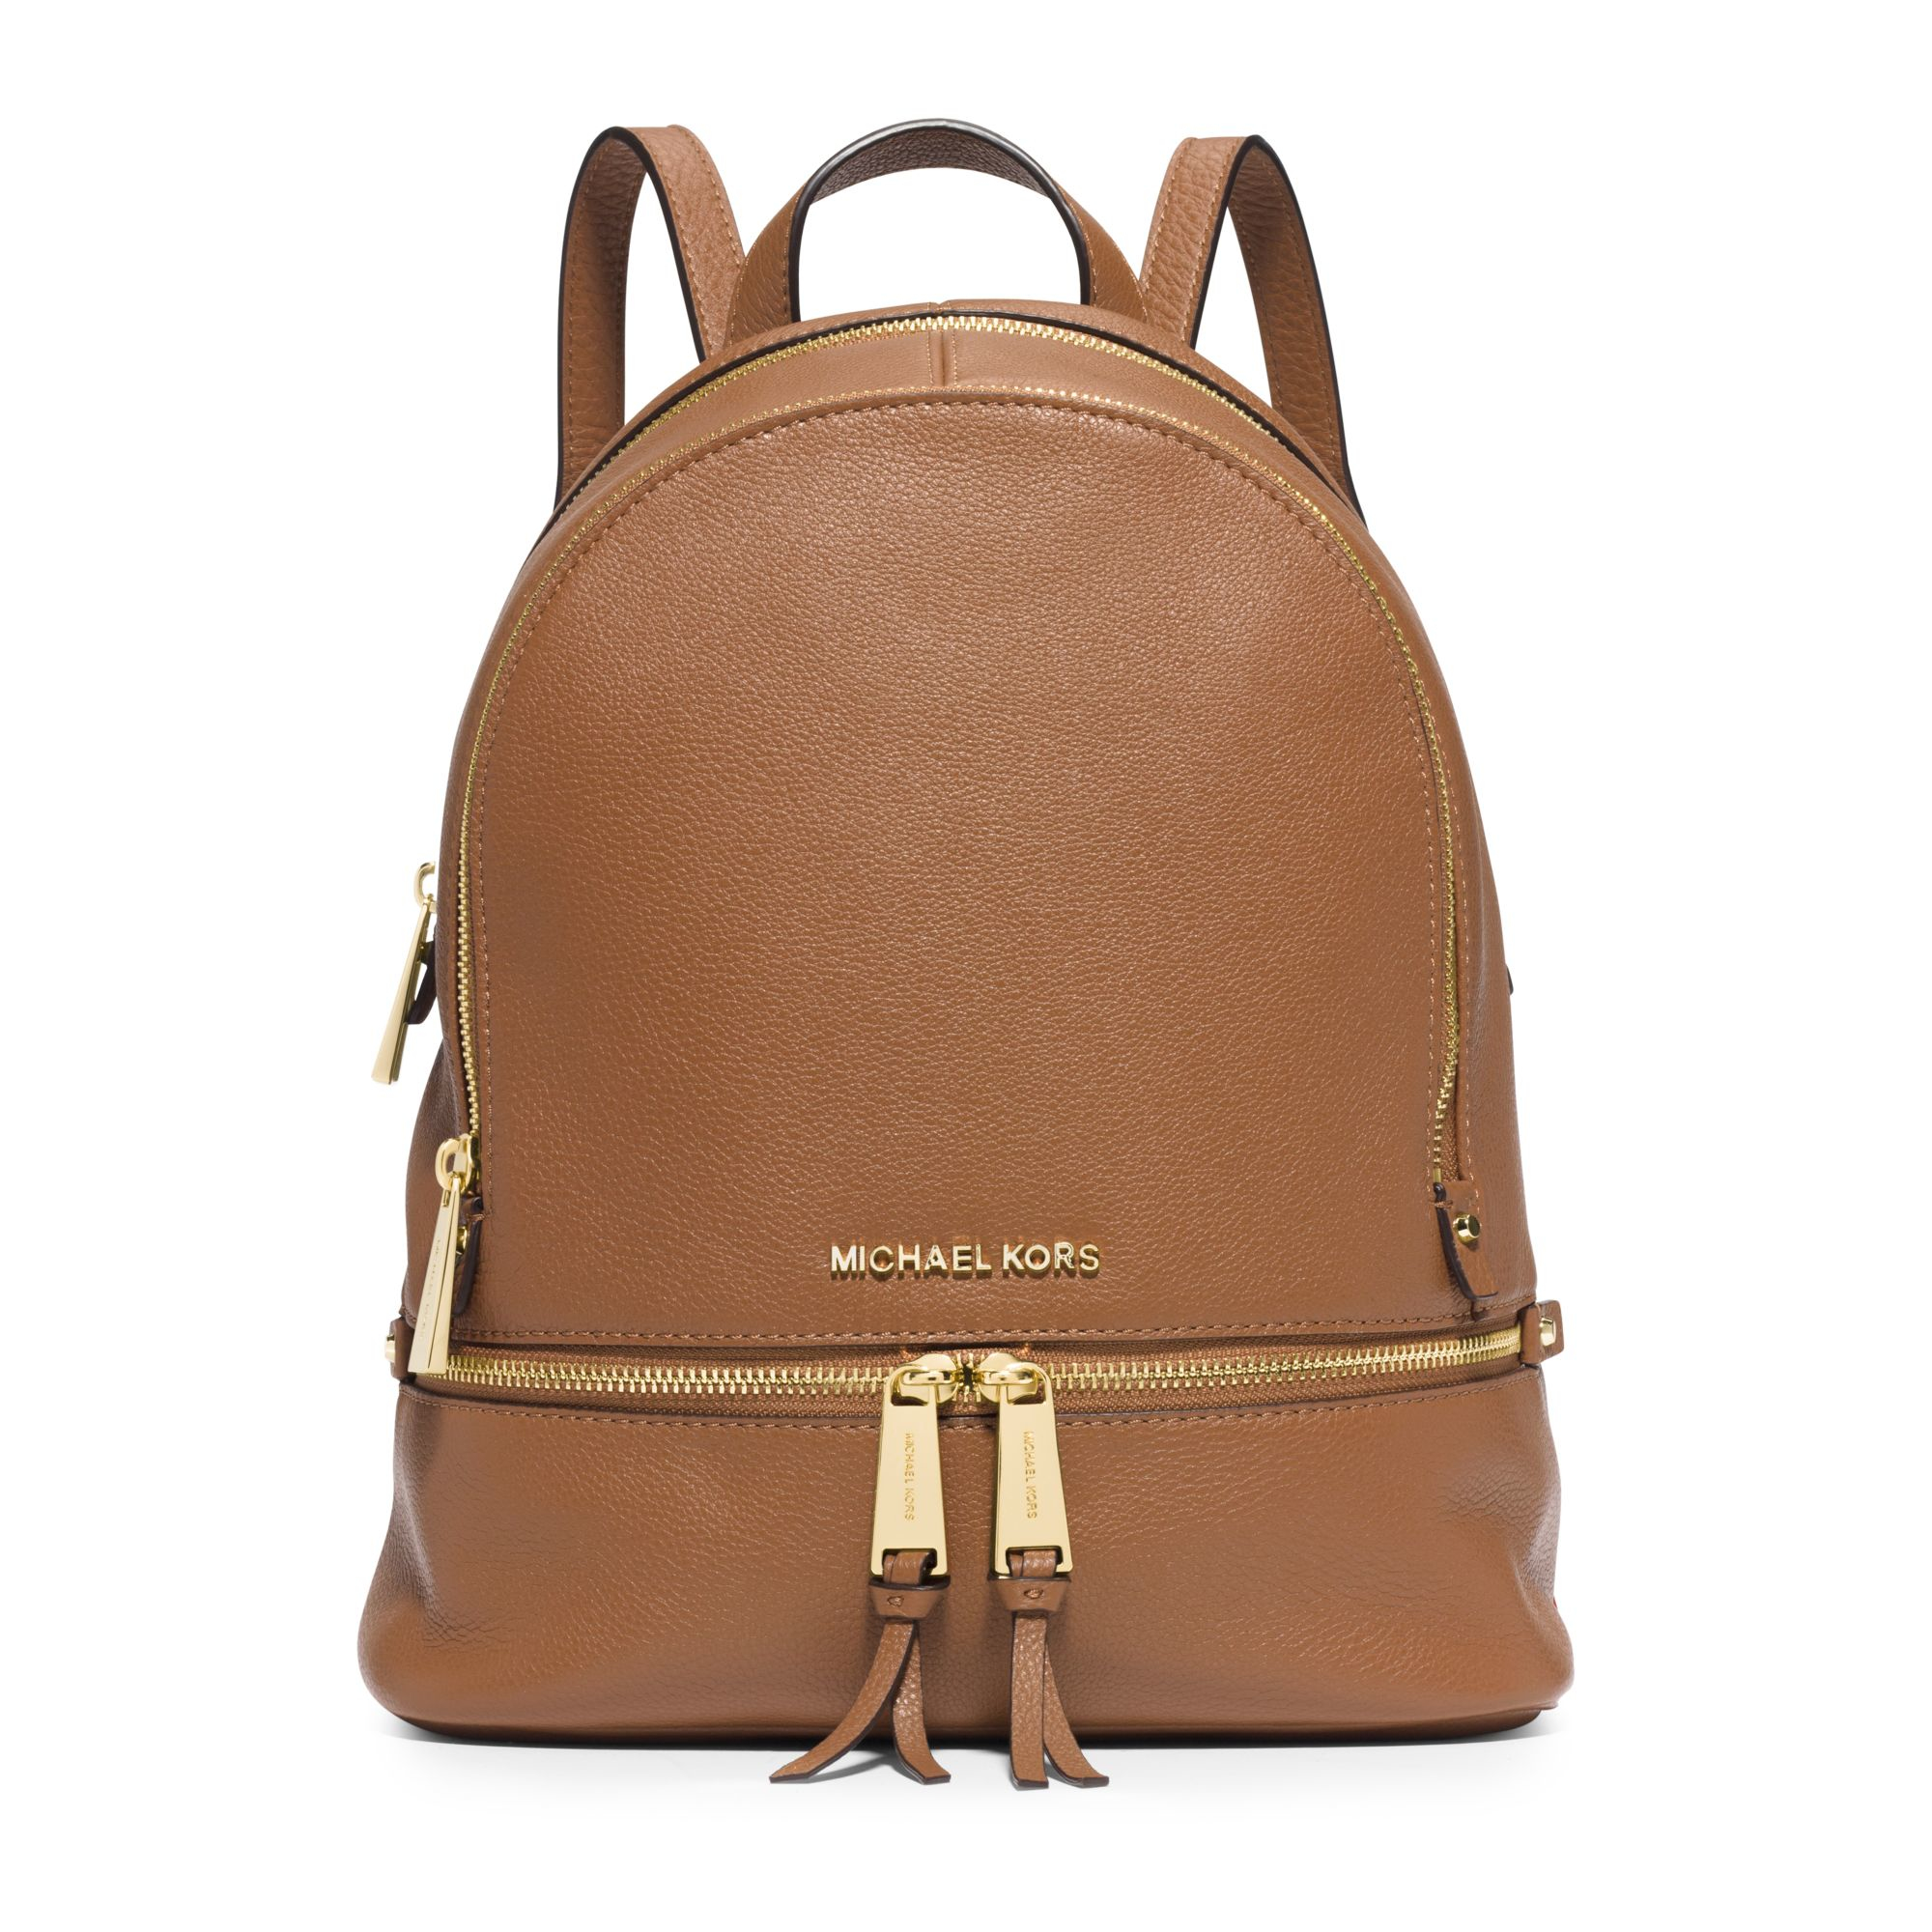 Michael kors Rhea Small Leather Backpack in Brown | Lyst